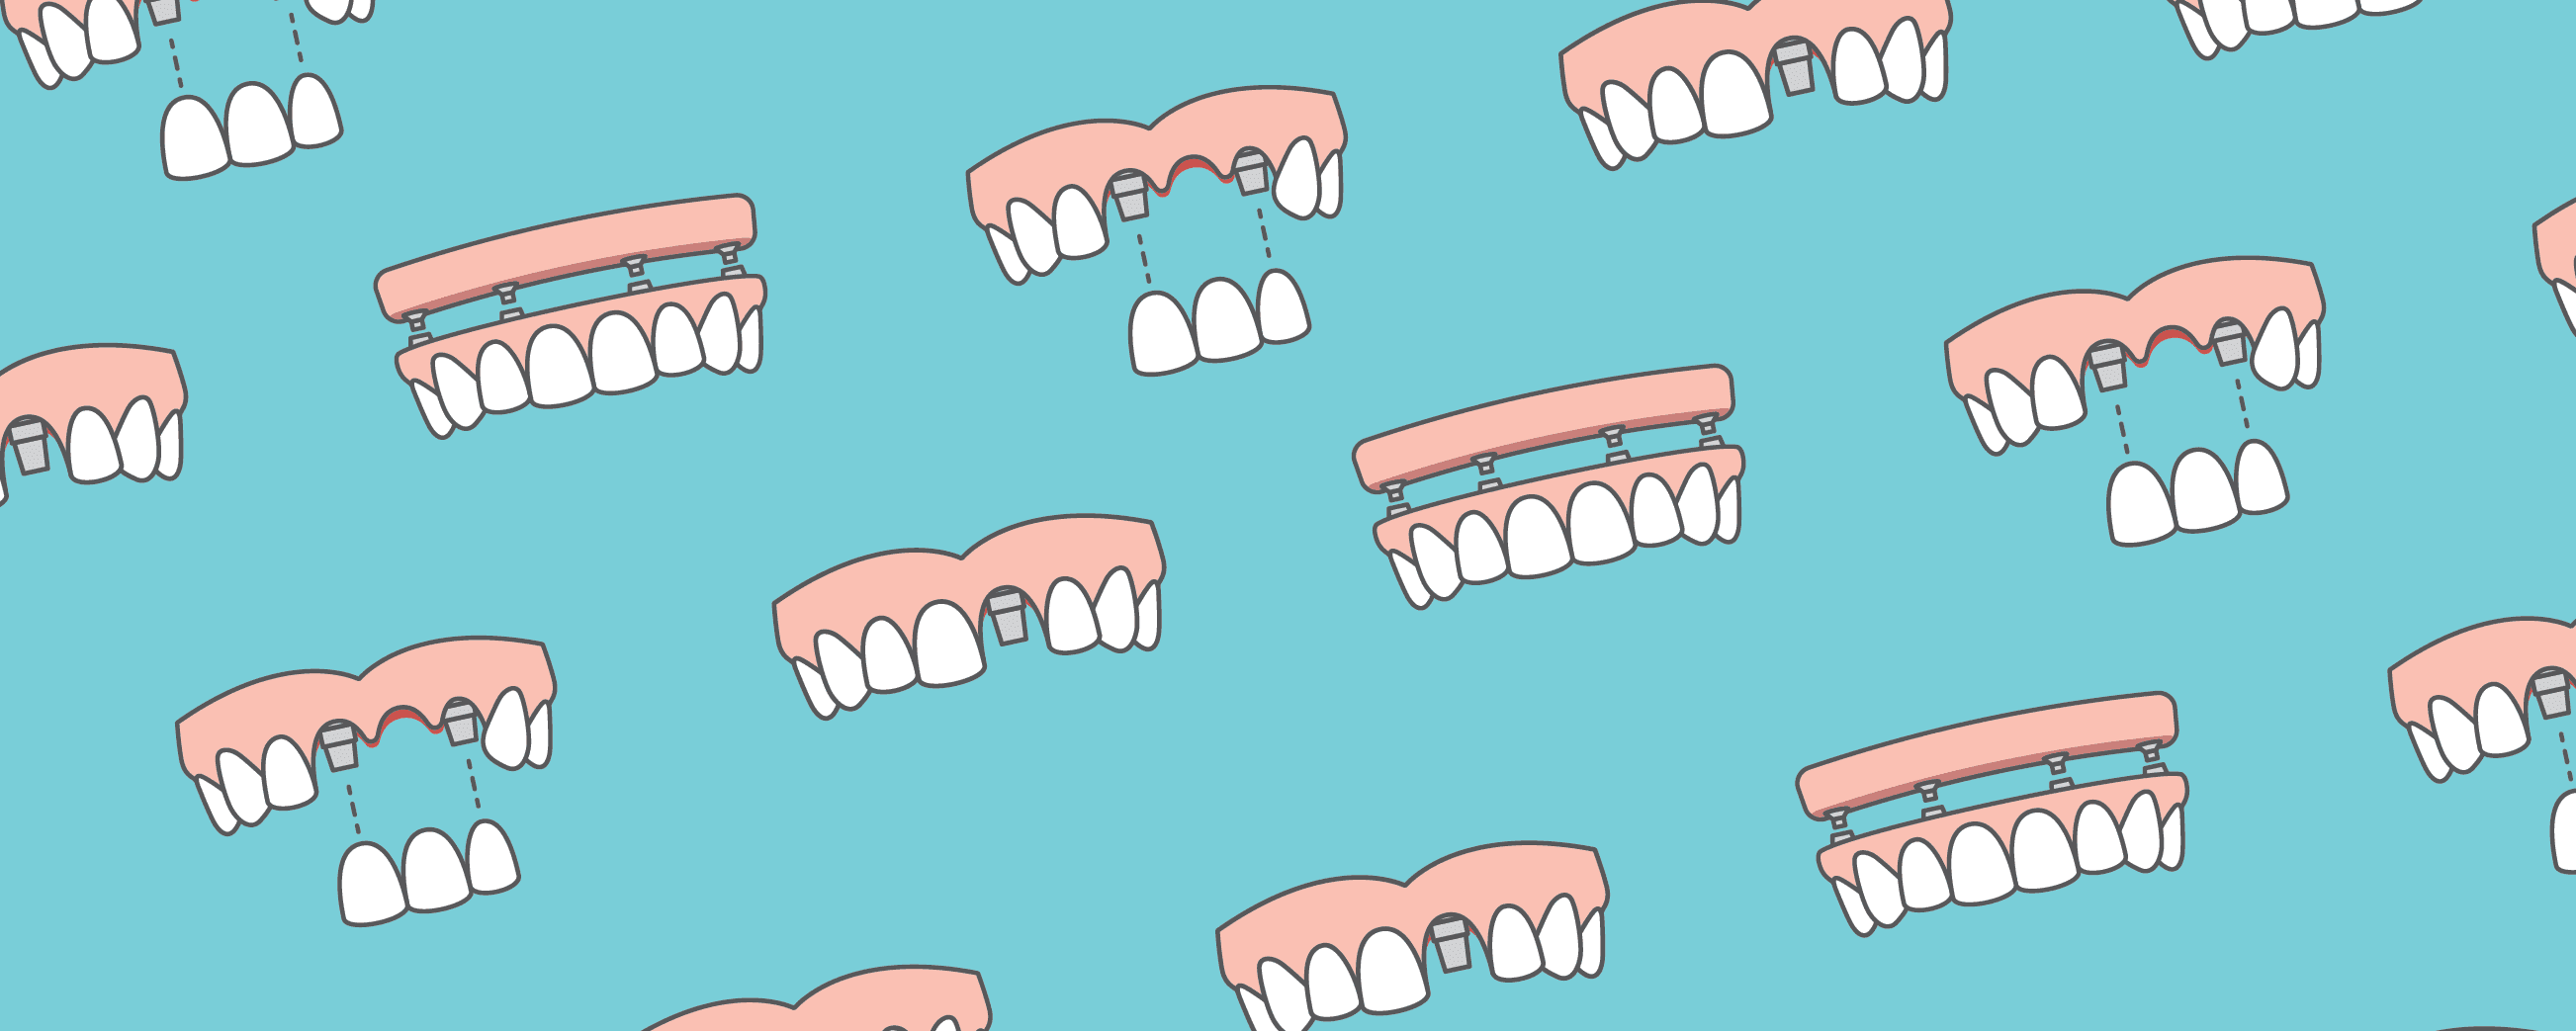 teeth implant illustration